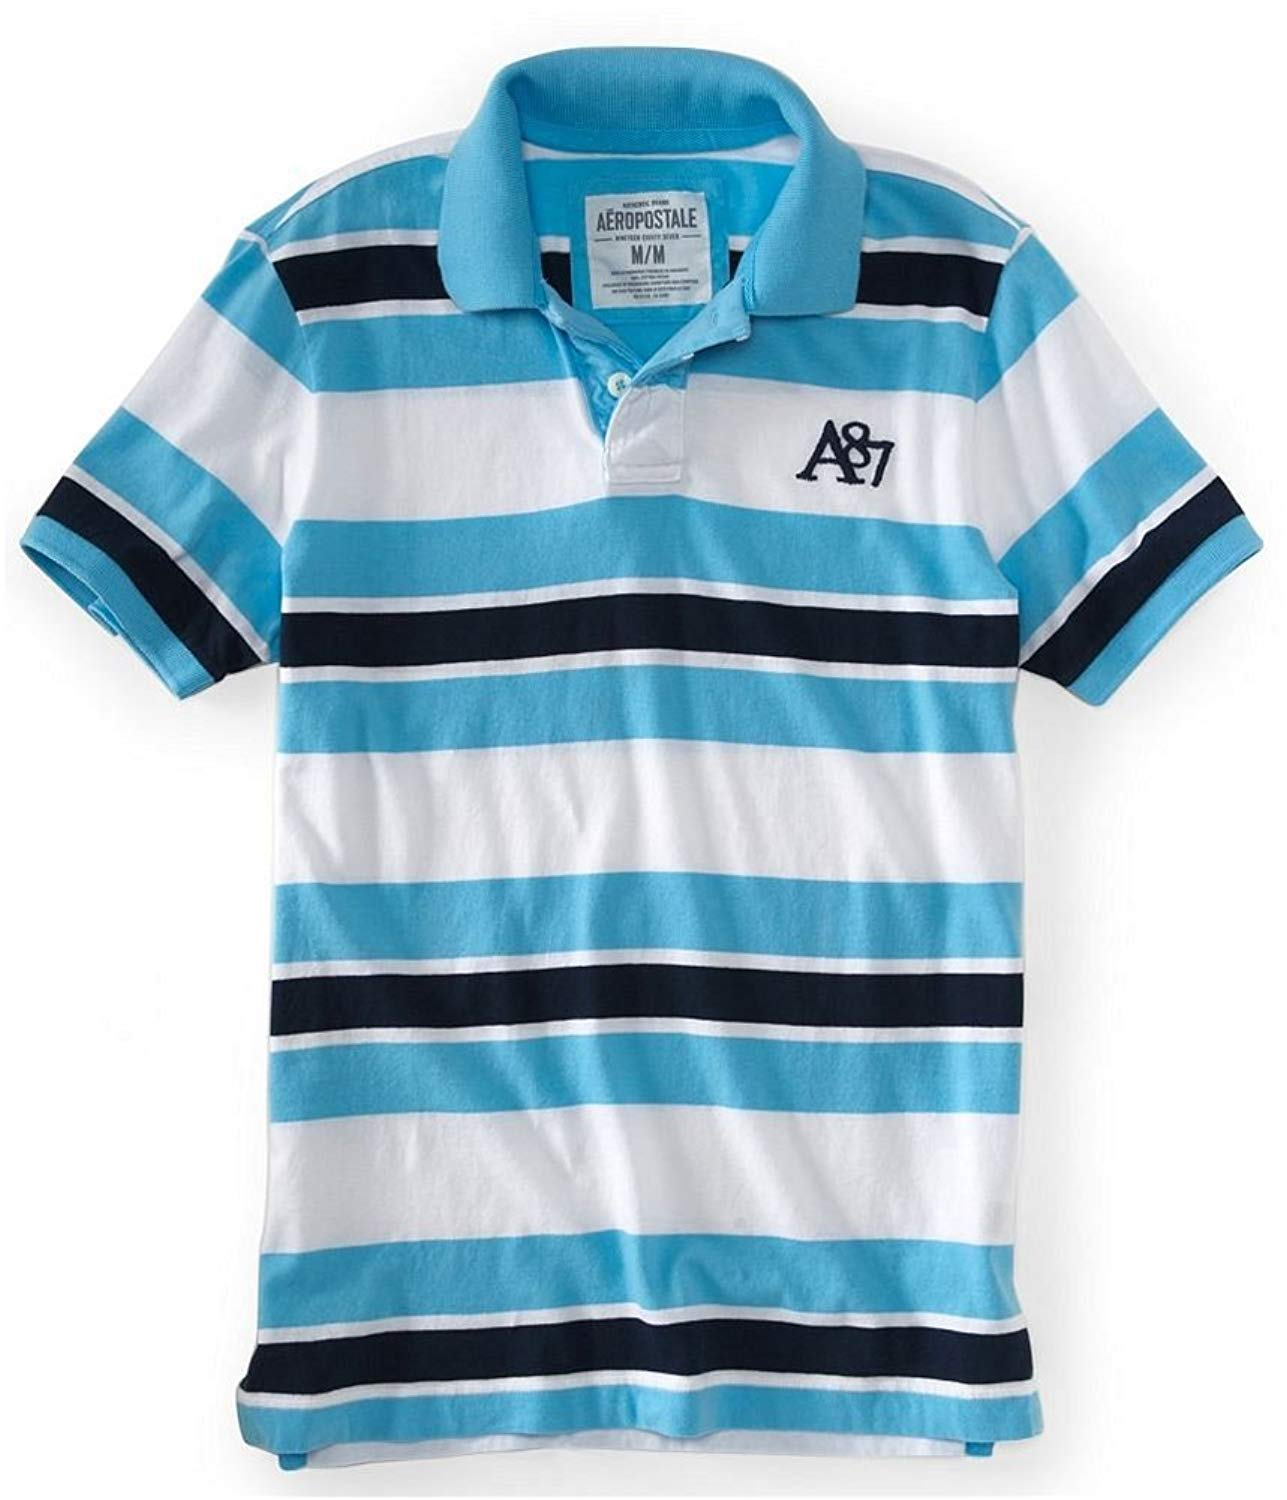 93fe8b234f2 Buy Aeropostale Mens A87 Stripe Rugby Polo Shirt in Cheap Price on ...